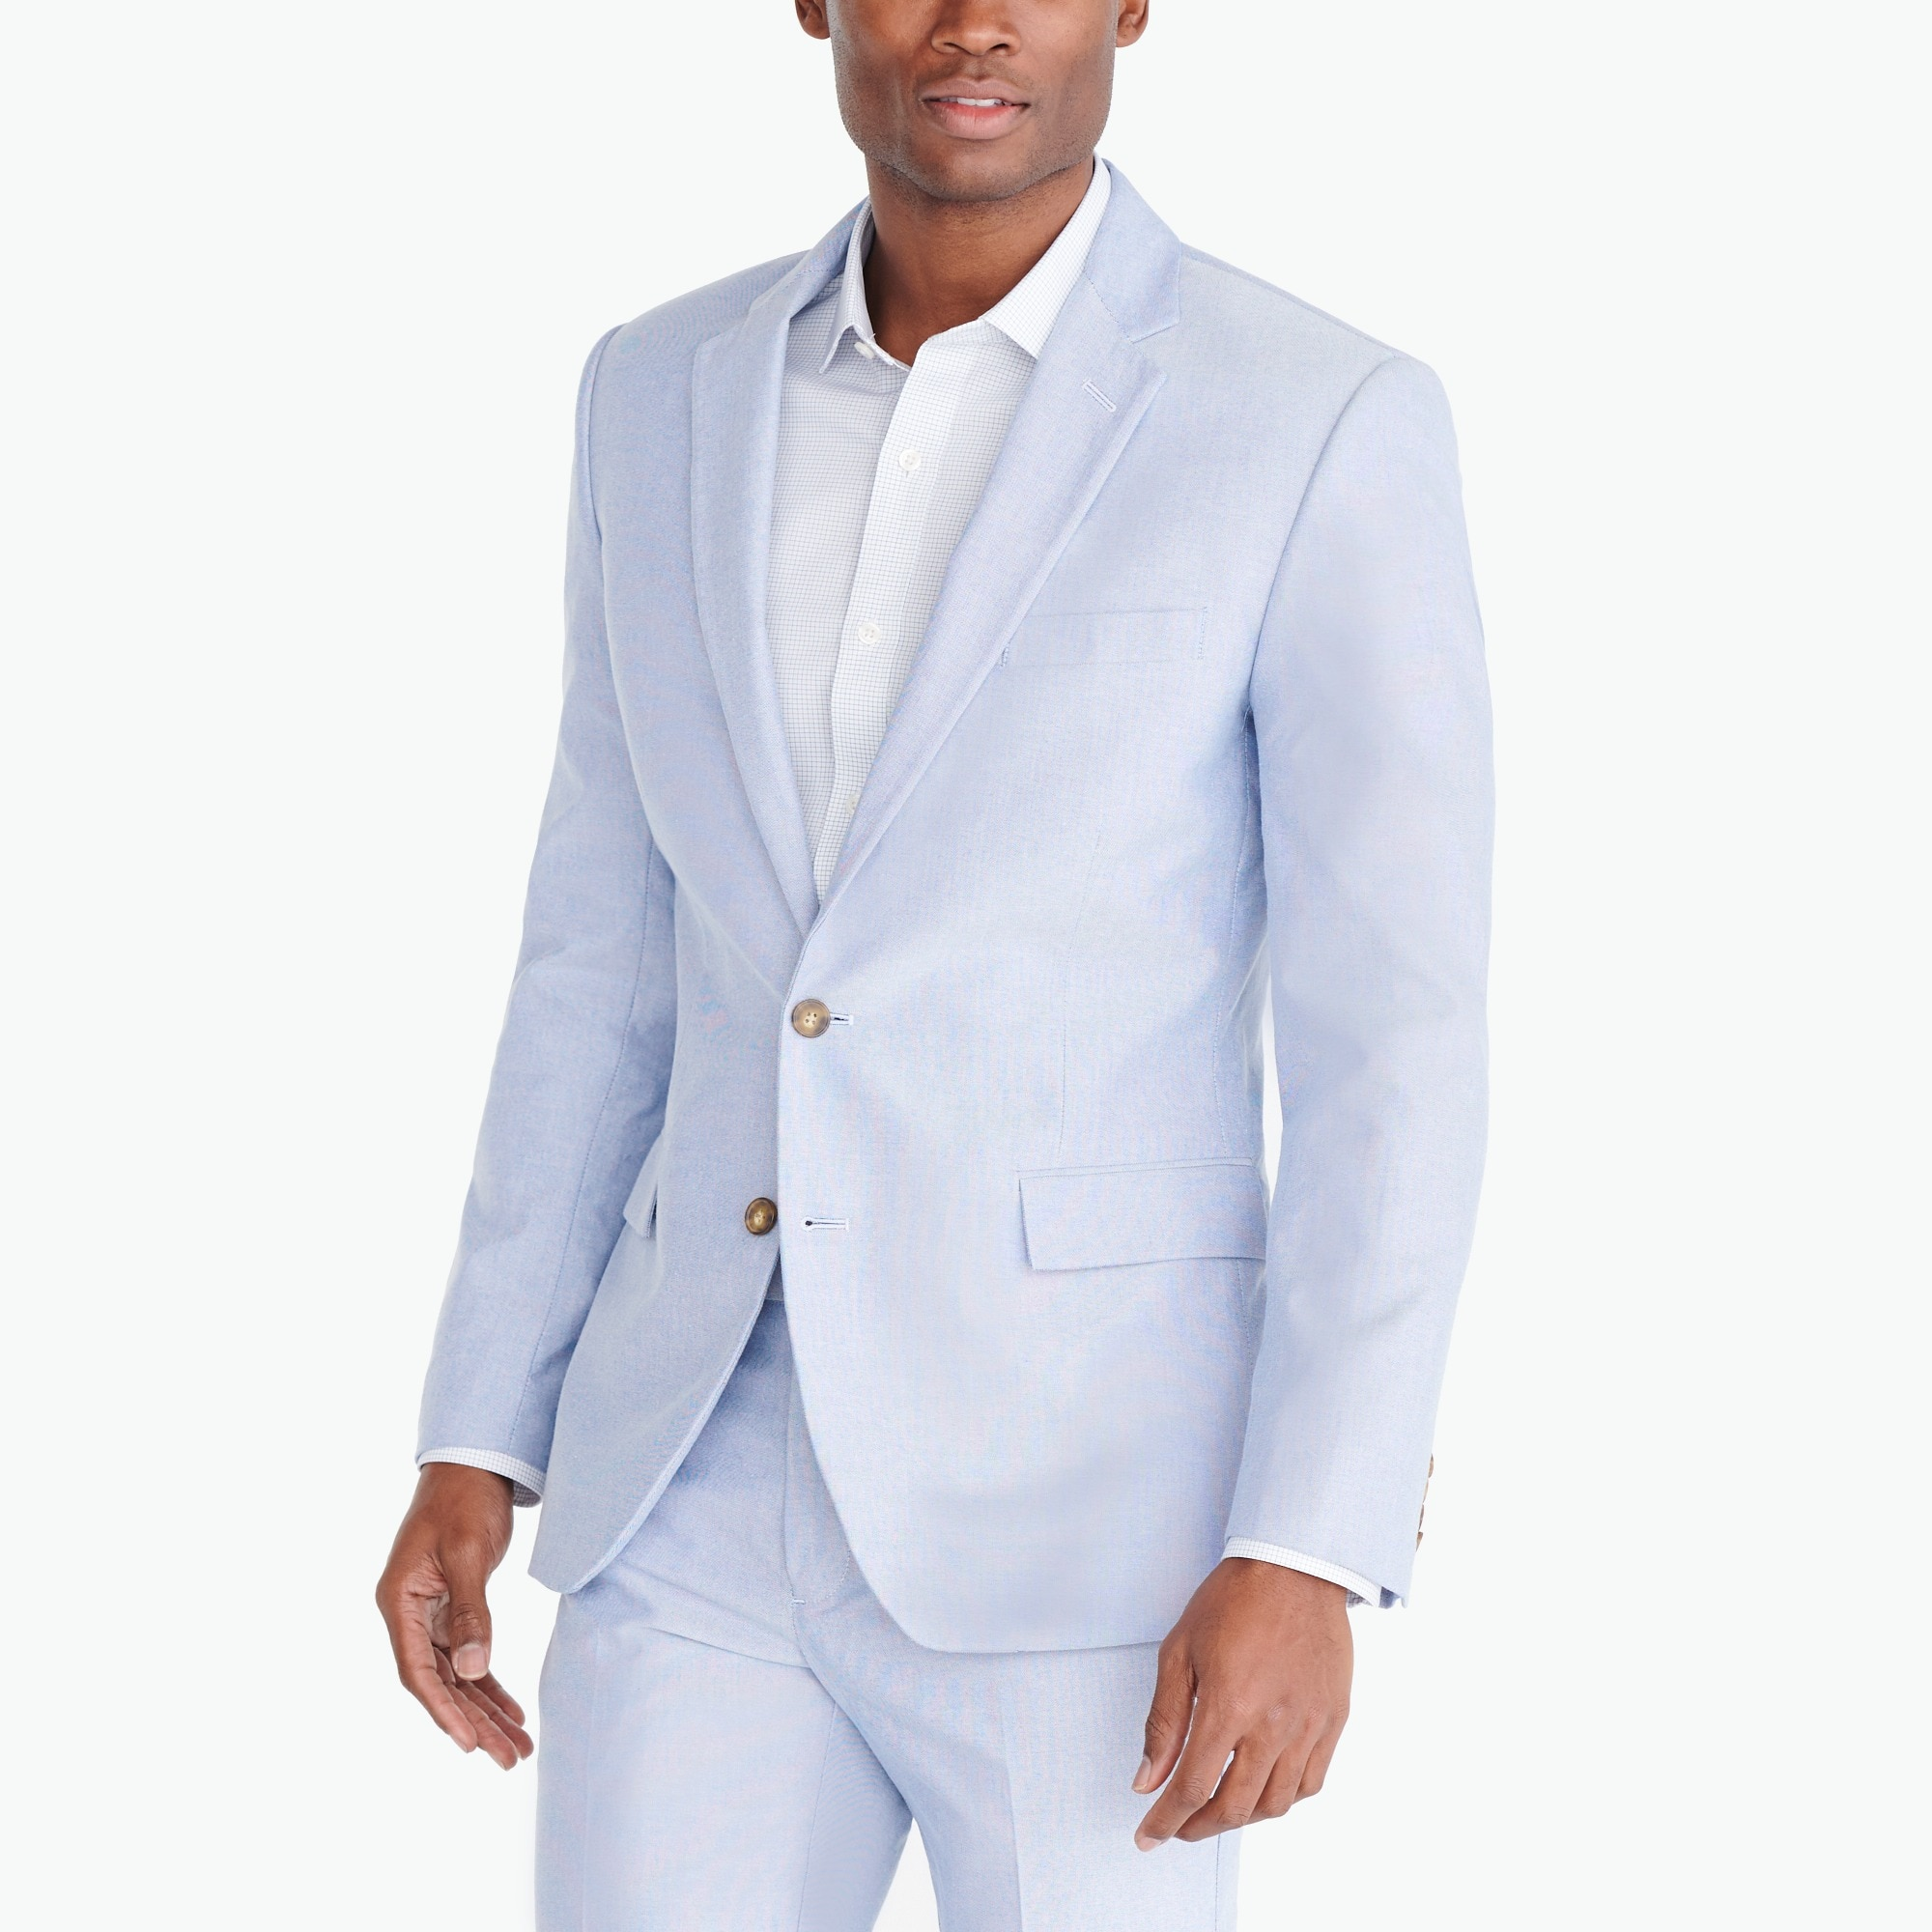 Image 1 for Slim-fit Thompson suit jacket in oxford cloth